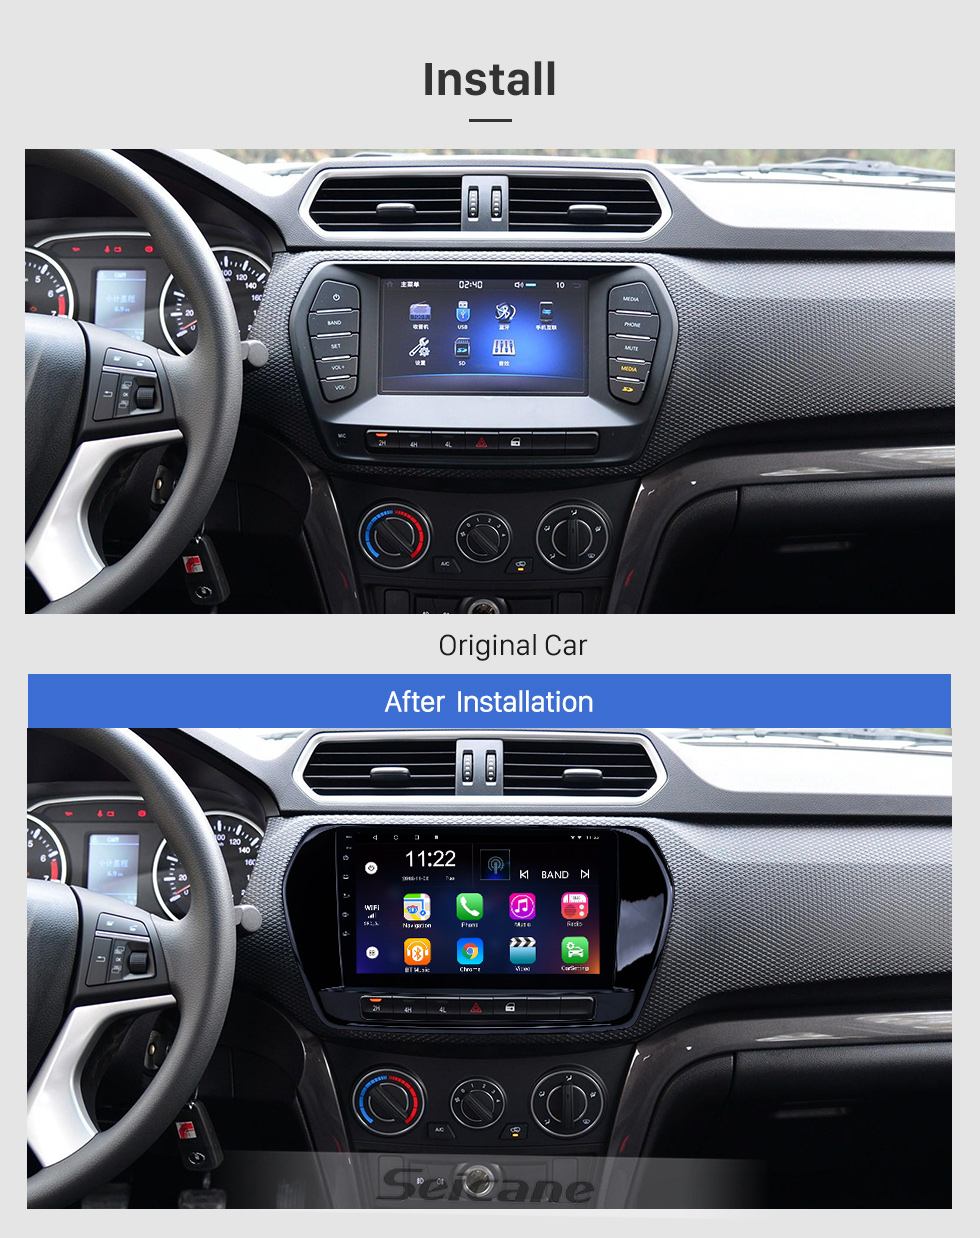 Seicane Android 8.1 9 pouces HD radio à navigation tactile GPS Navigation pour 2011-2015 Great Wall Wingle 5 avec support Bluetooth Carplay DVR OBD2